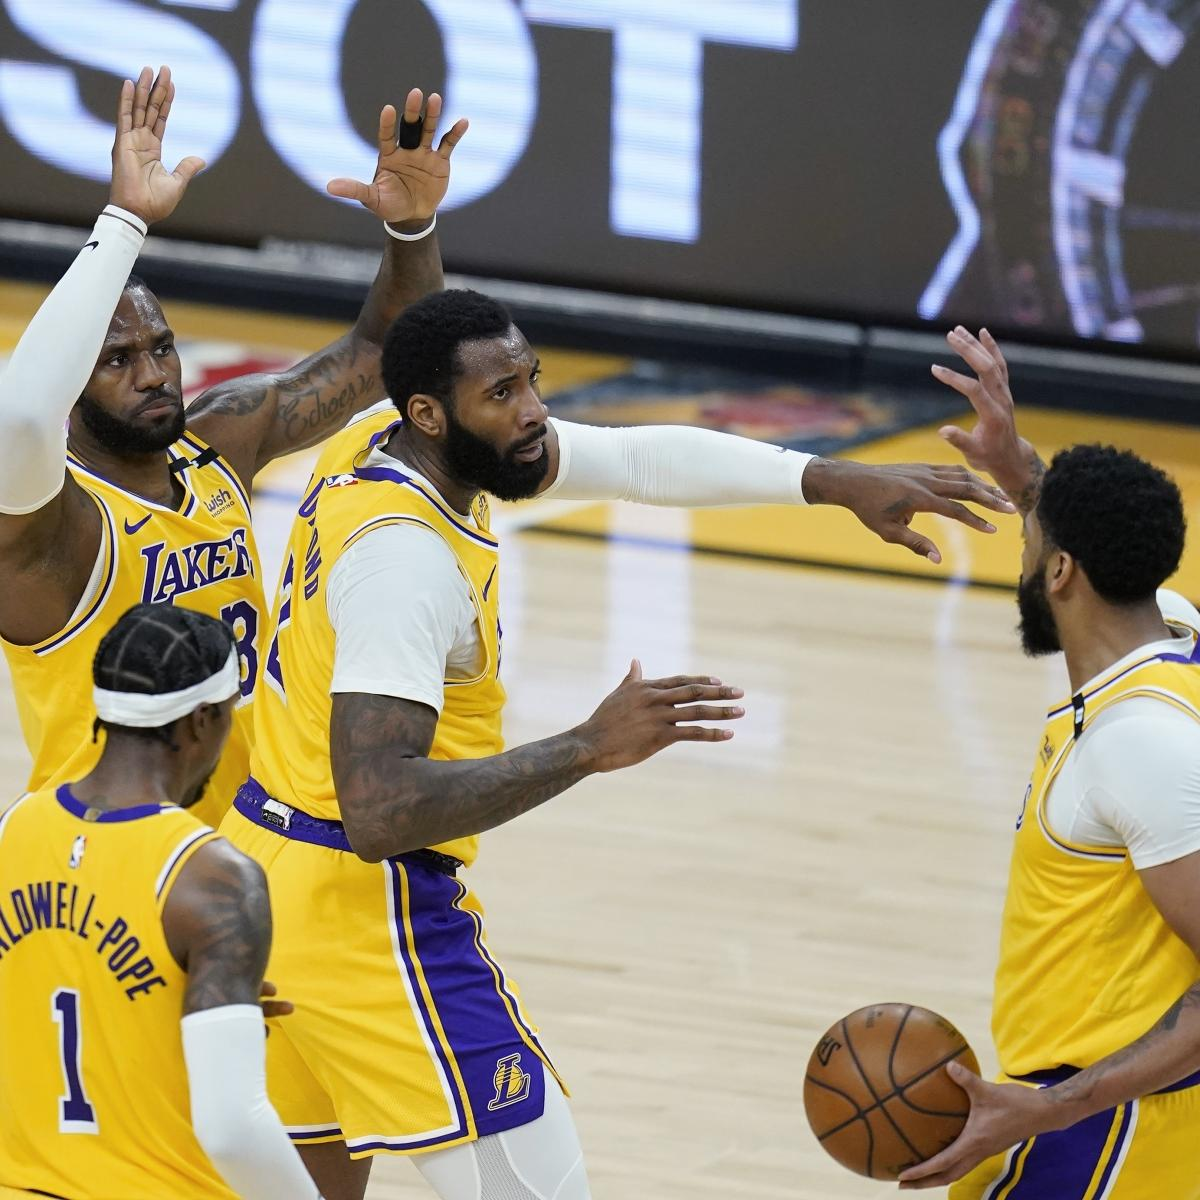 lakers-snap-judgments-on-2021-playoff-destiny-after-recreation-2-vs-suns.jpg